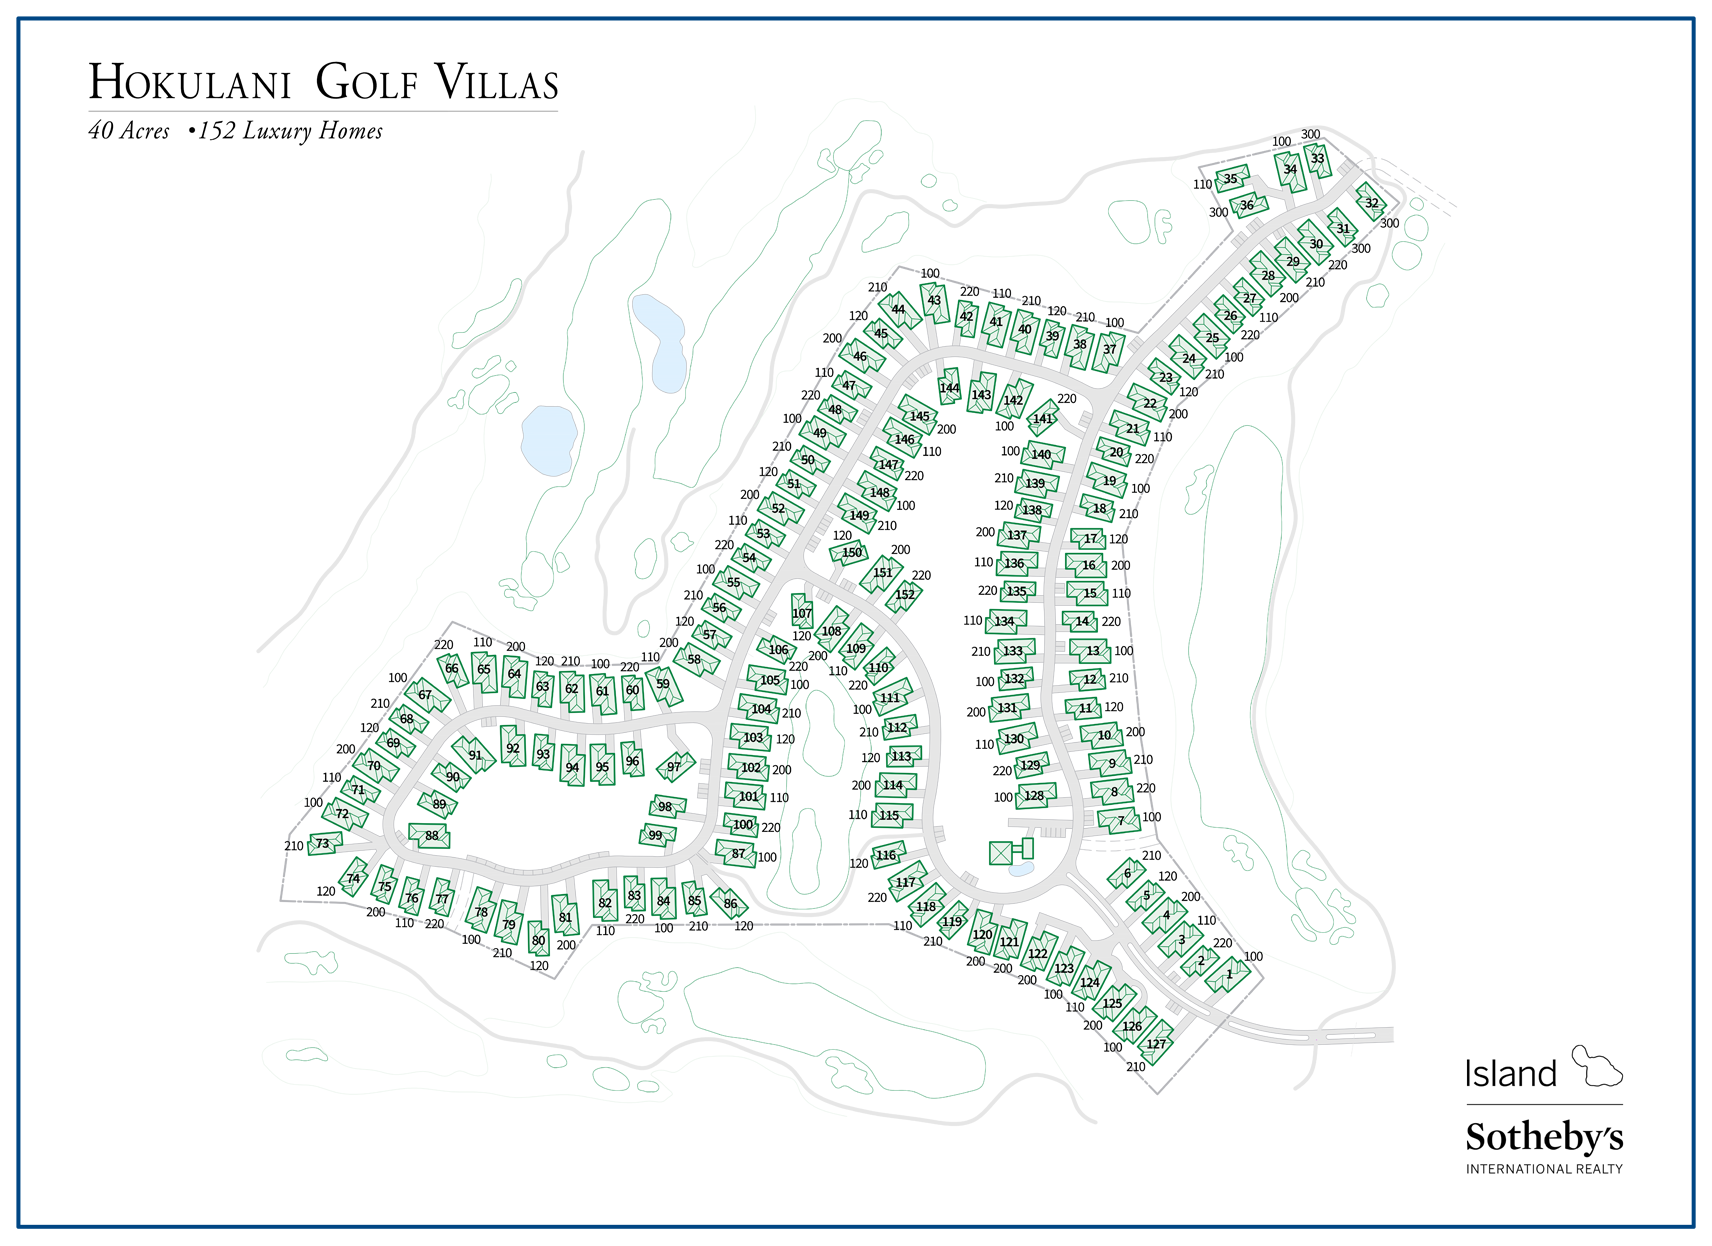 hokulani golf villas map detailed 2018